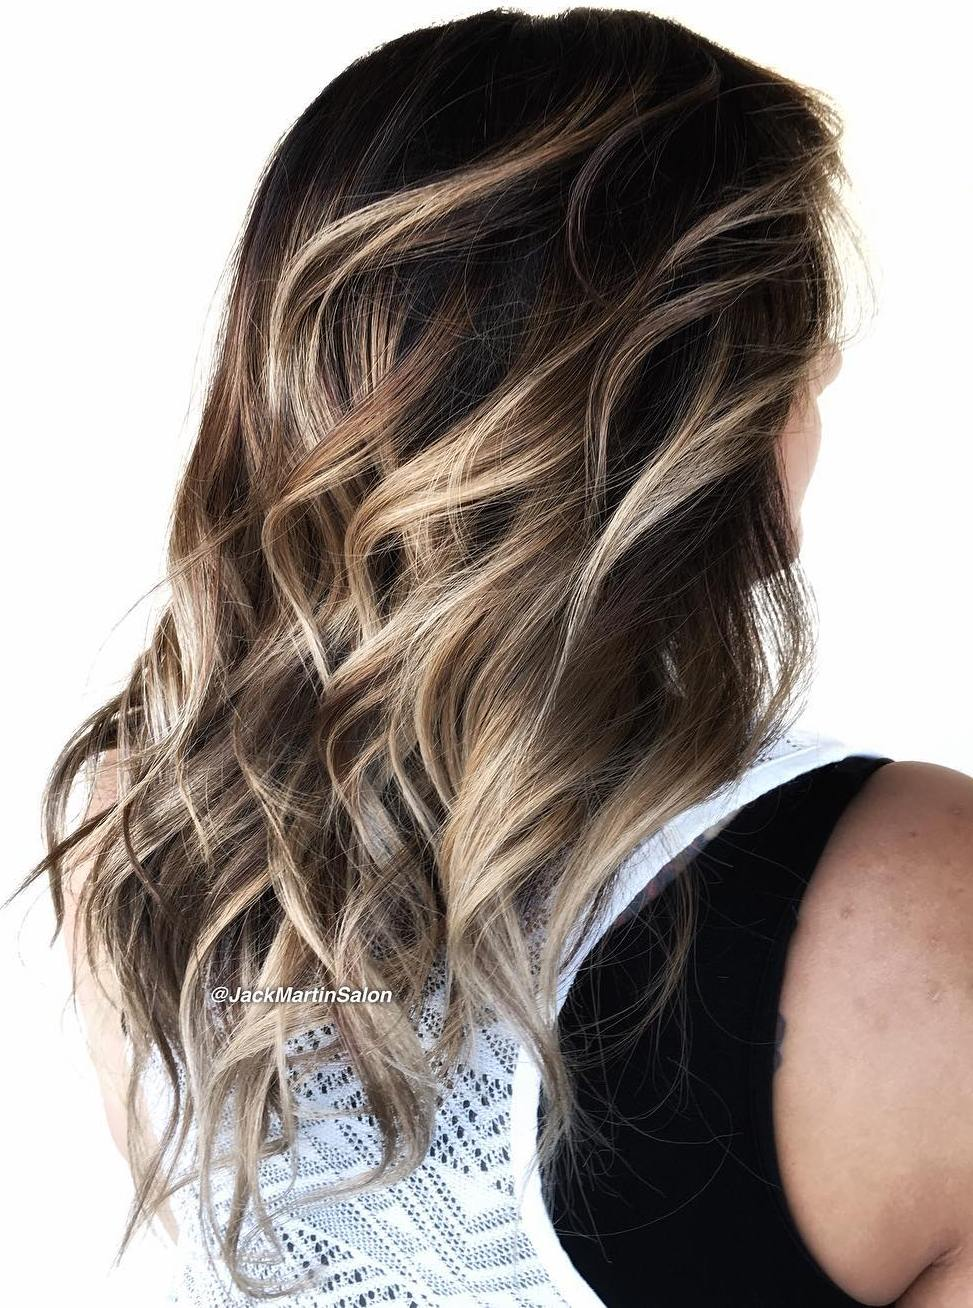 70 Balayage Hair Color Ideas with Blonde, Brown, Caramel ... - photo #31